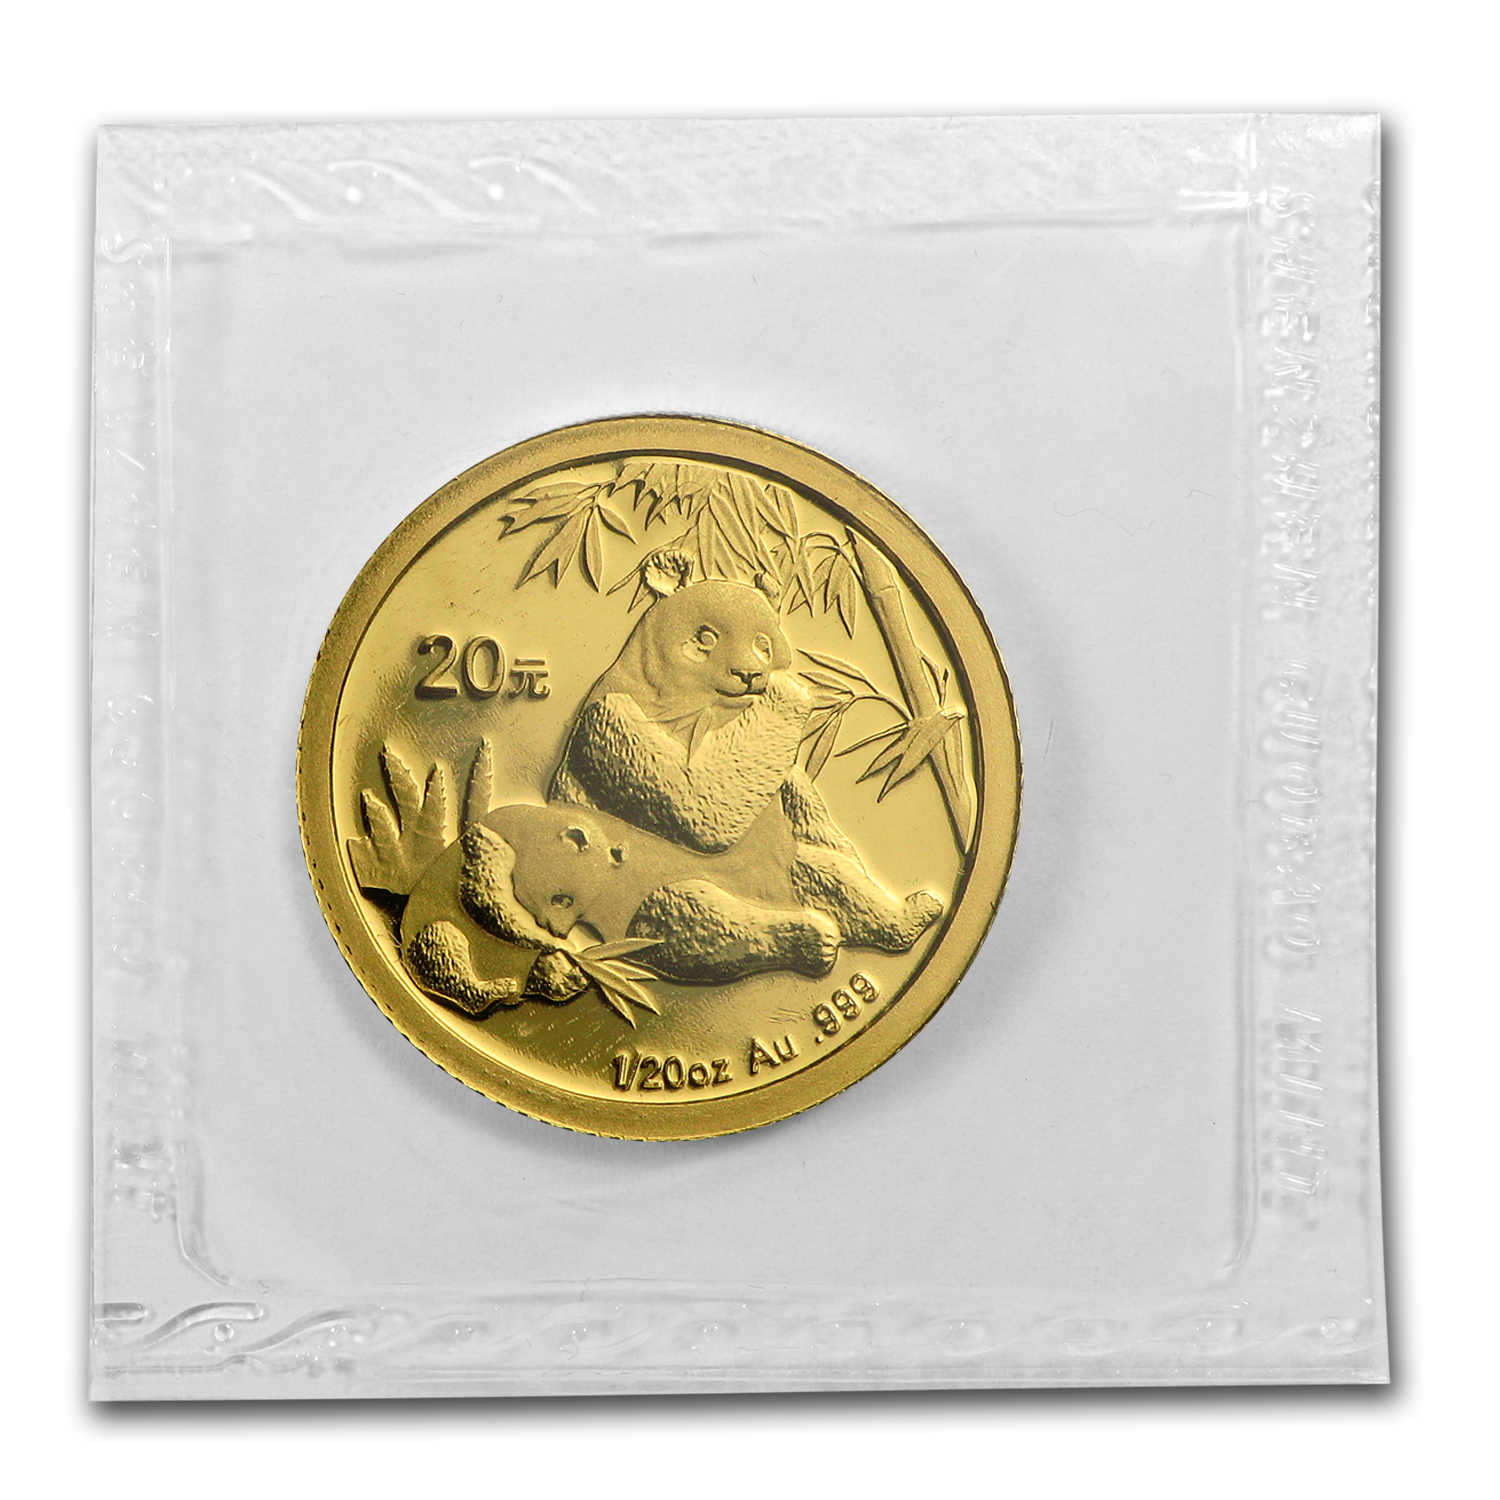 2007 (1/20 oz) Gold Chinese Pandas - (Sealed)